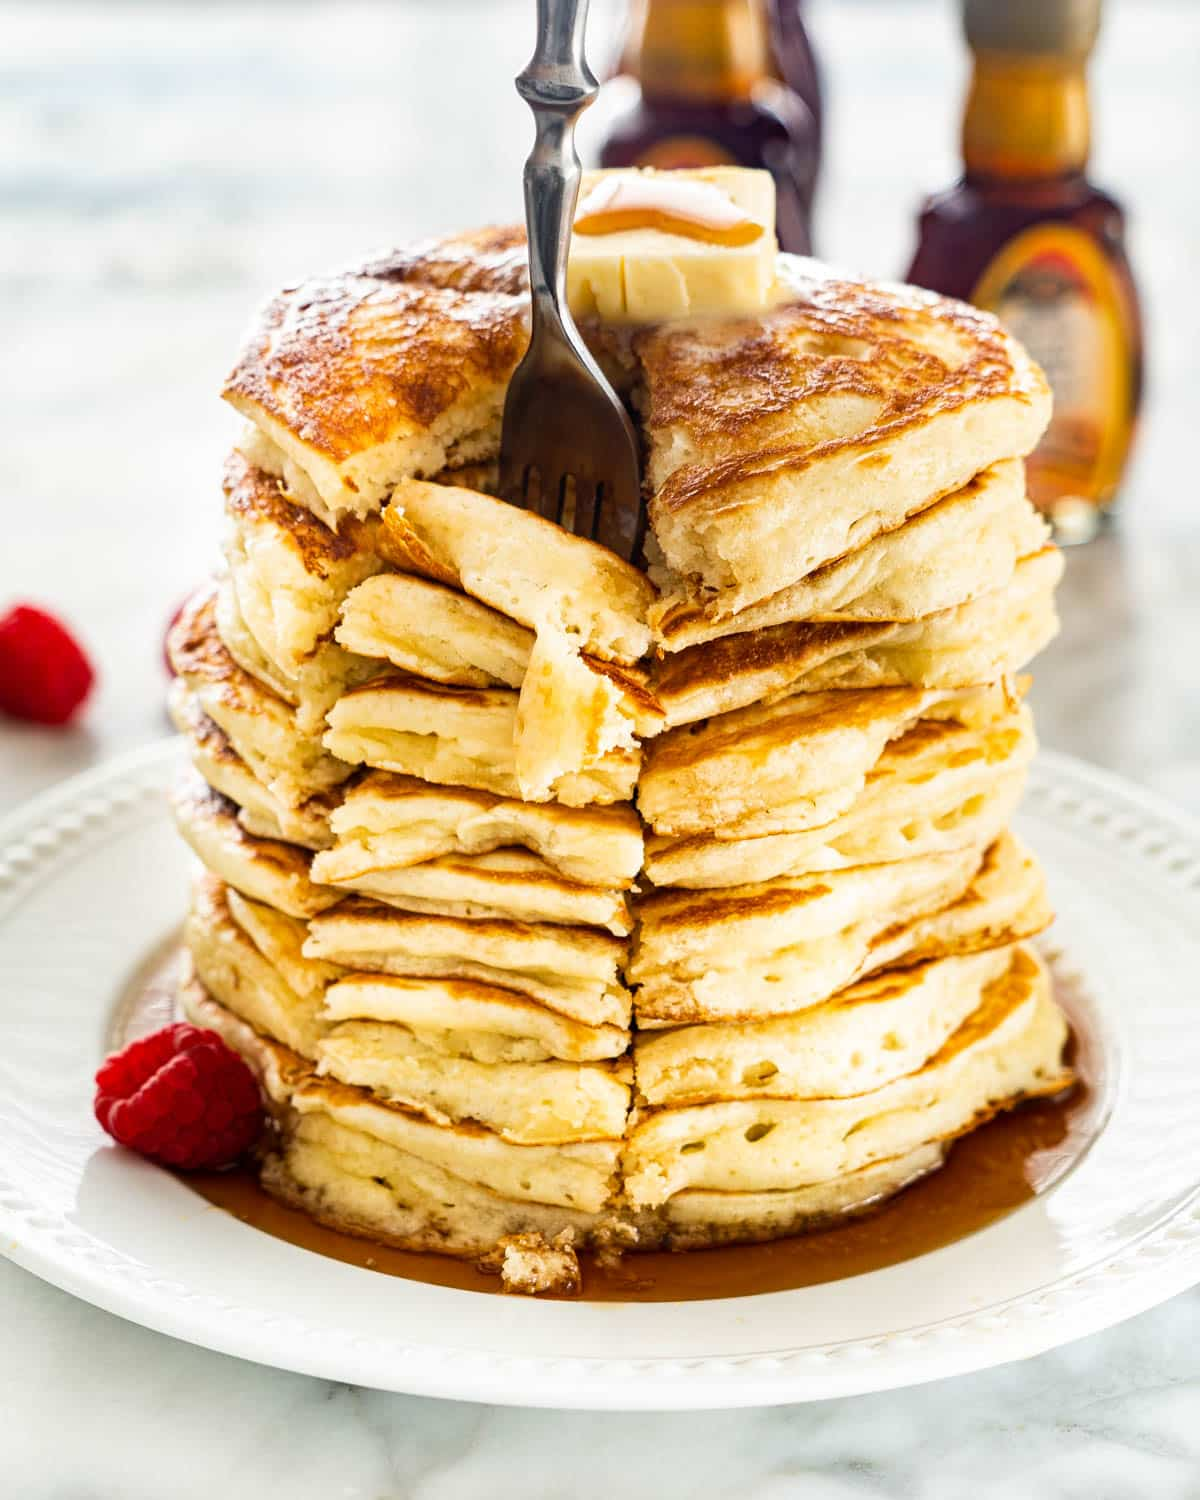 inserting a fork into a stack of pancakes